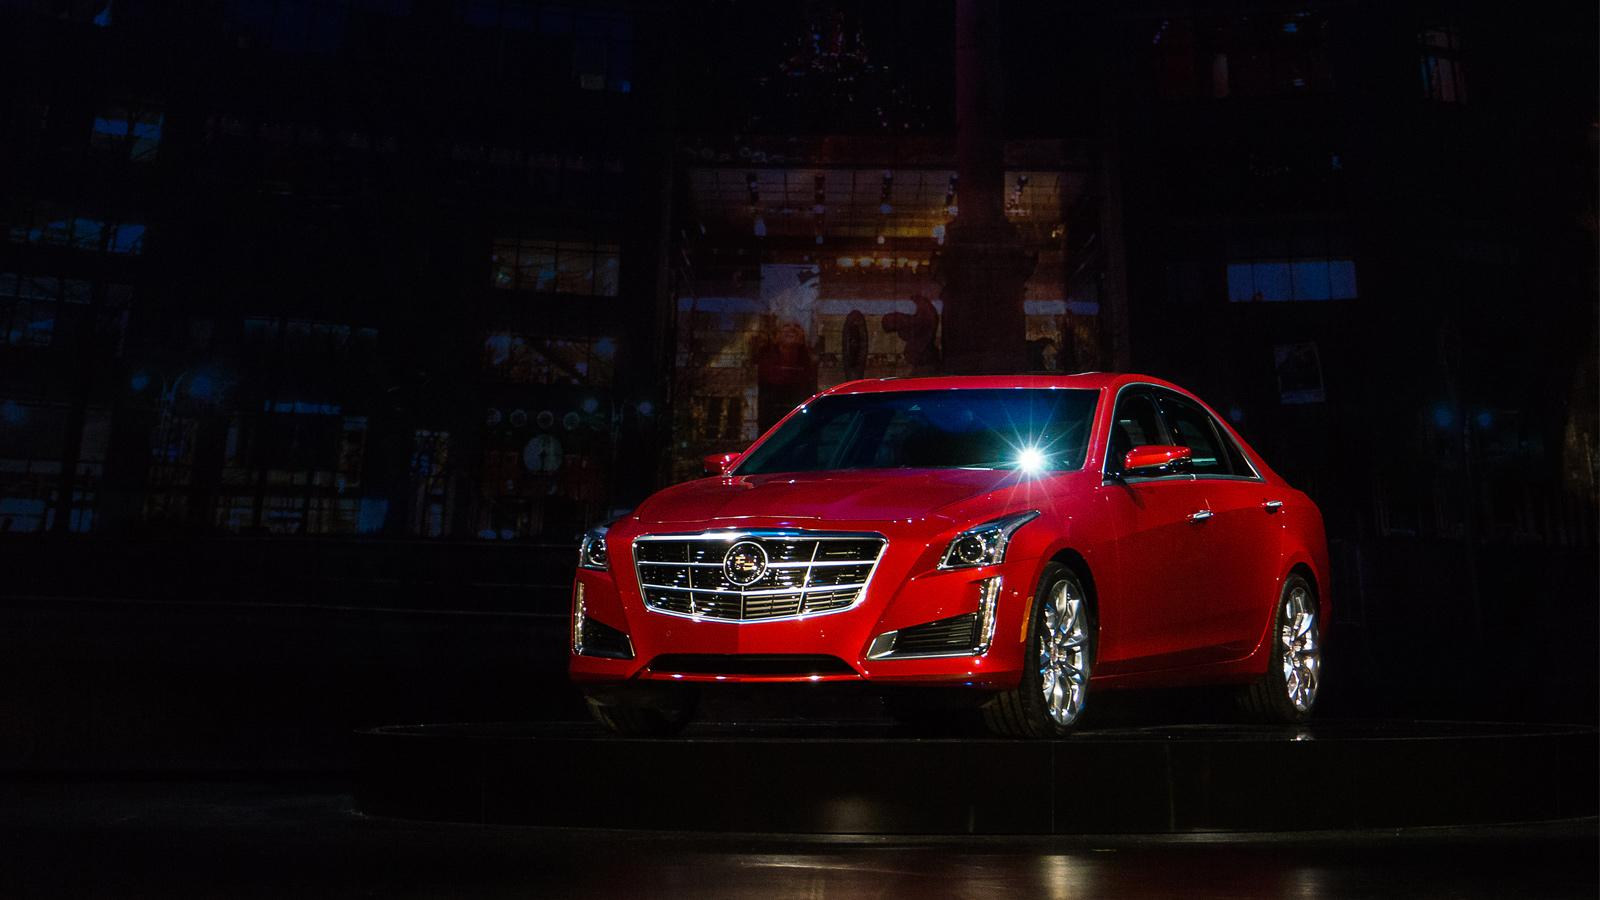 Sal n de new york 2013 top 10 cadillac cts 2014 for 10 best audiobooks of 2013 salon